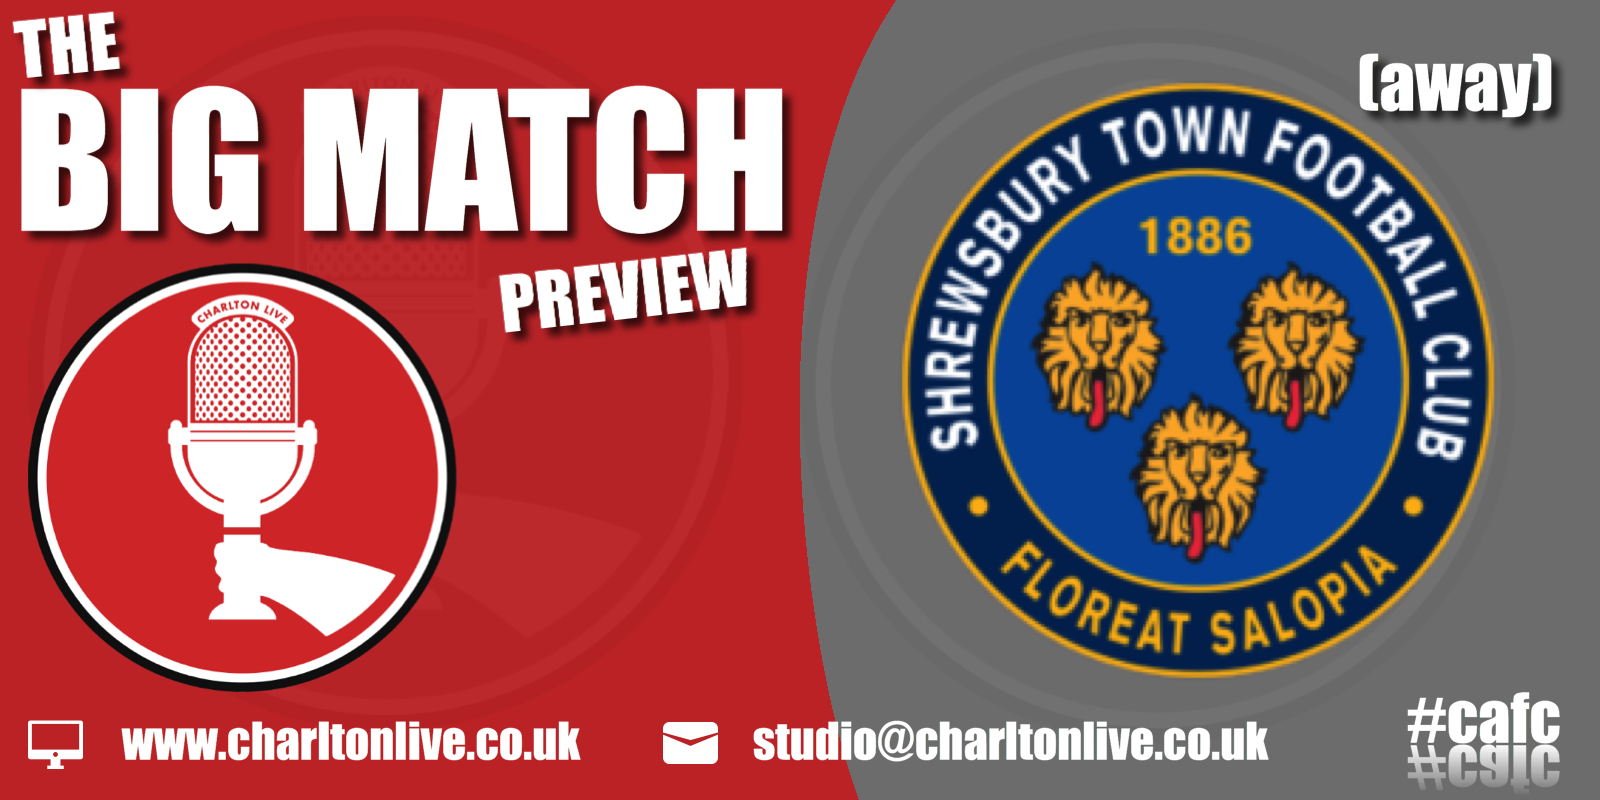 Join Louis Mendez, Tom Wallin and Nathan Muller as they gear up for Saturday's trip to Shrewsbury. They discuss the signings of full-back Ben Purrington […]